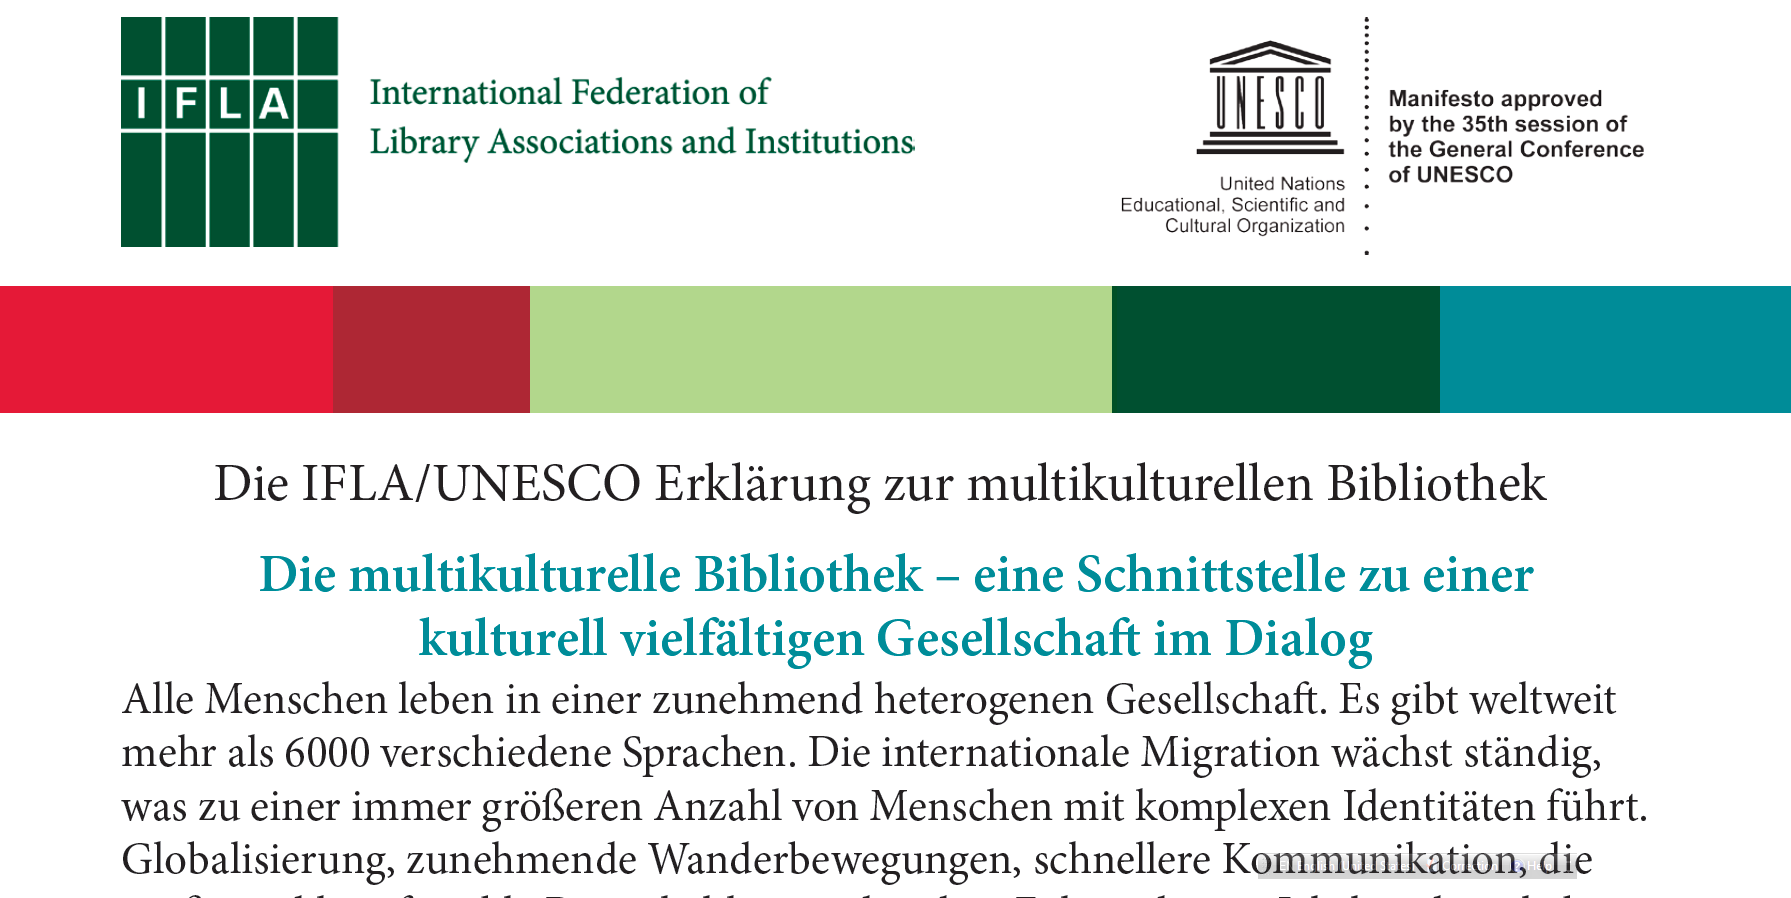 IFLA Manifest 2006/2008 IFLA Section : Library Services to Multicultural Populations Section http://www.ifla.